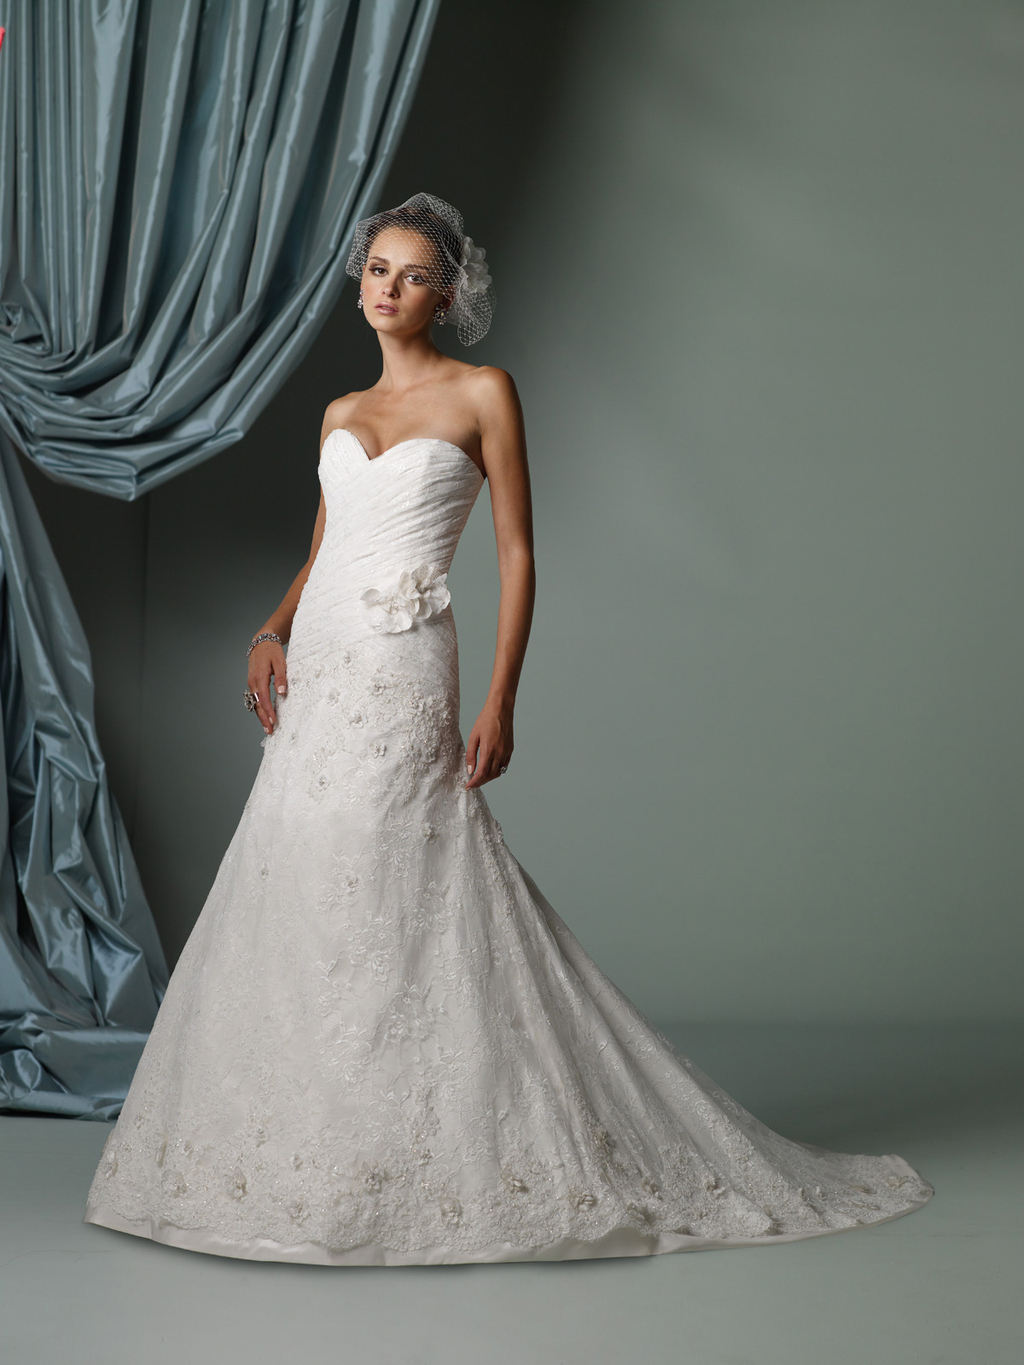 2012 wedding dress james clifford for mon cheri bridal gowns J11237